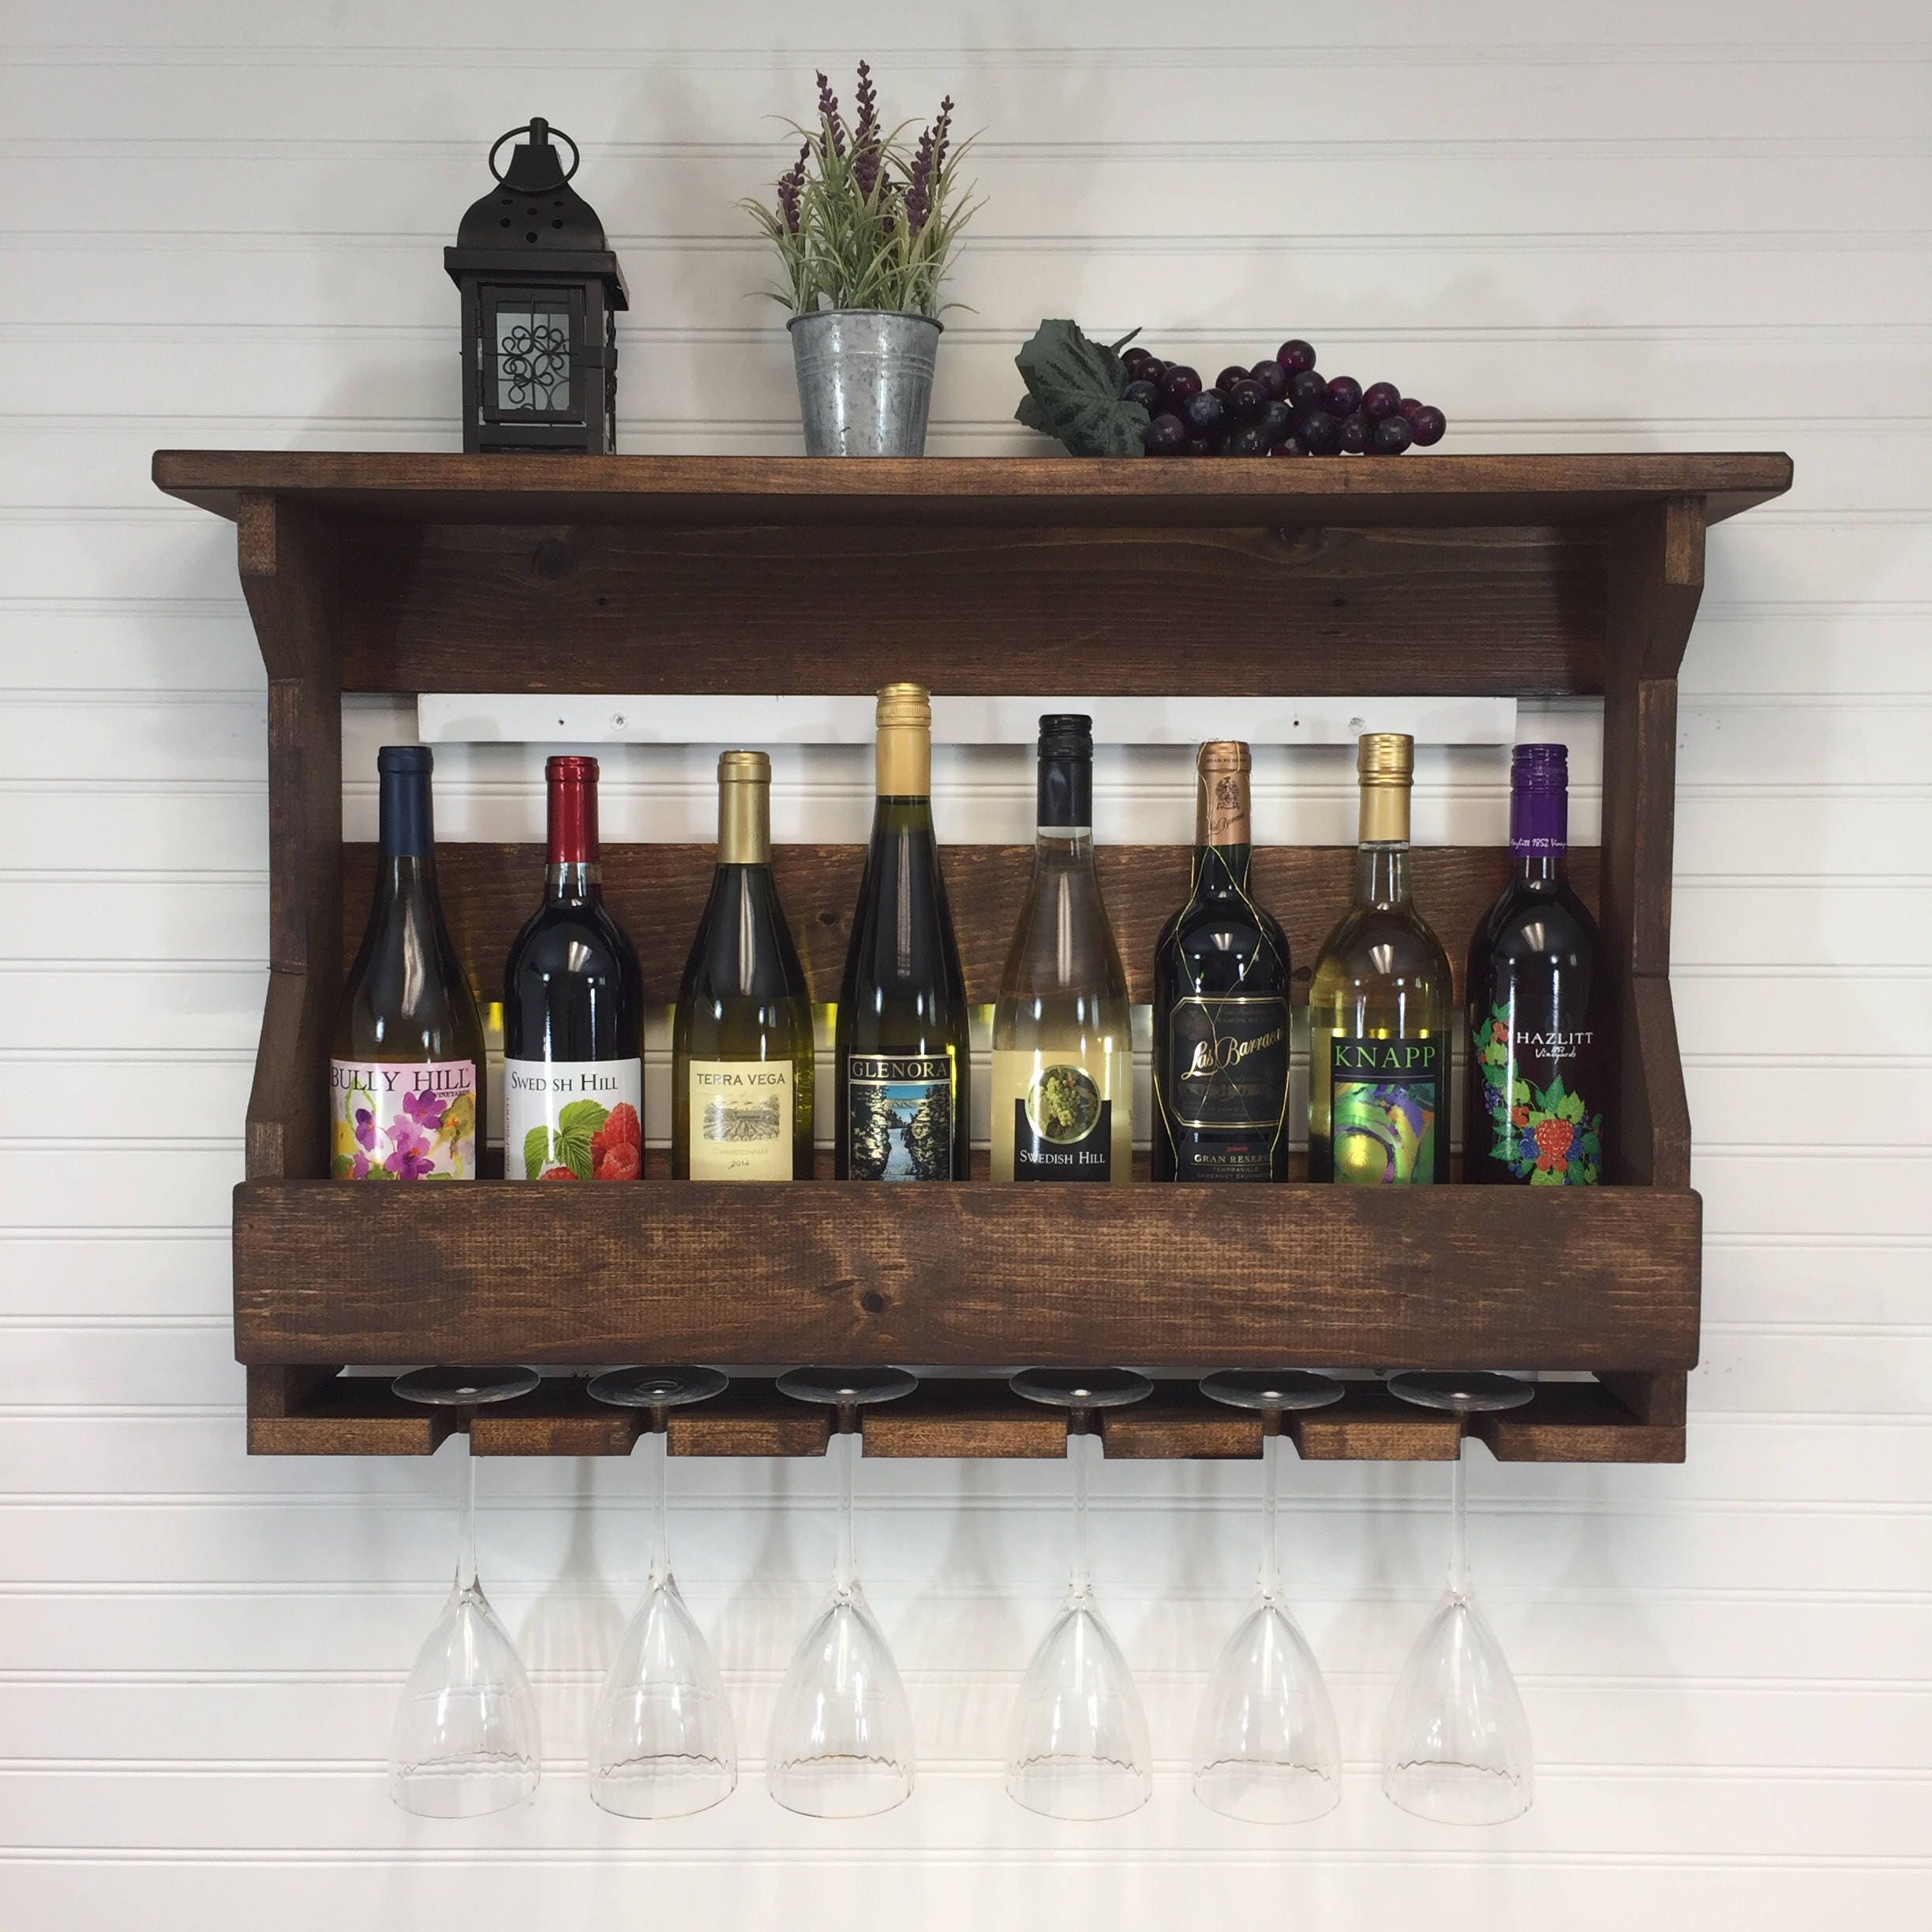 adams wine designs modular oak rack ahalife nerhqmkirwsqumllzuyo wooden jk stact